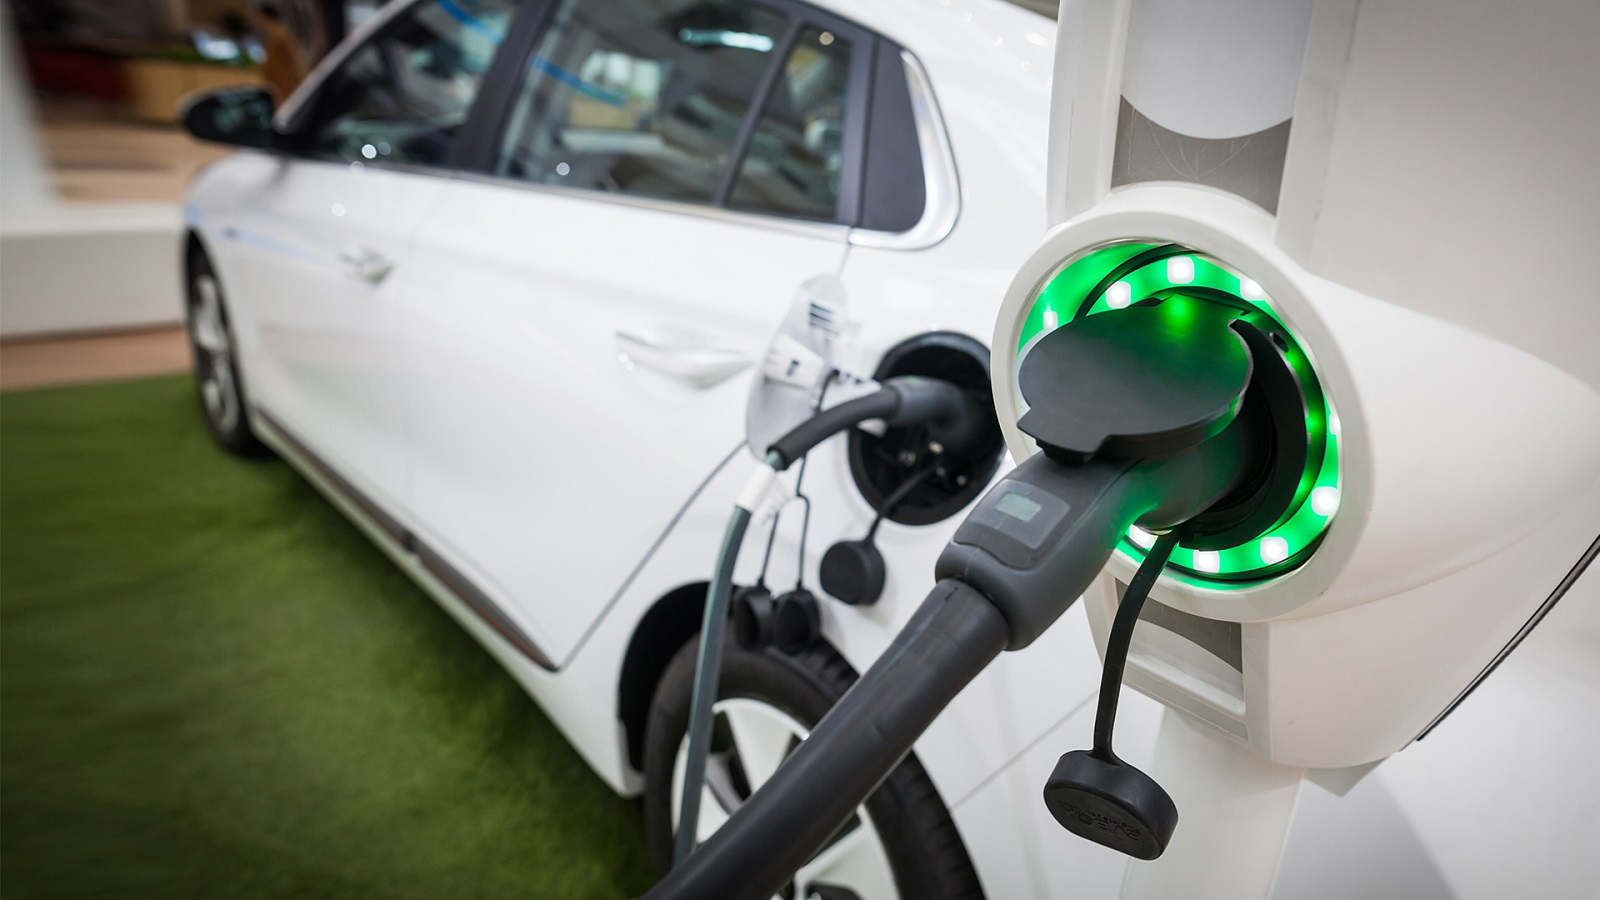 The U.S. Department of Energy has awarded Argonne with $4.3 million for 12 projects across six divisions. Two of the 12 projects seek to make charging electric vehicles faster and easier. (Image by Shutterstock / By Alexandru Nika.)